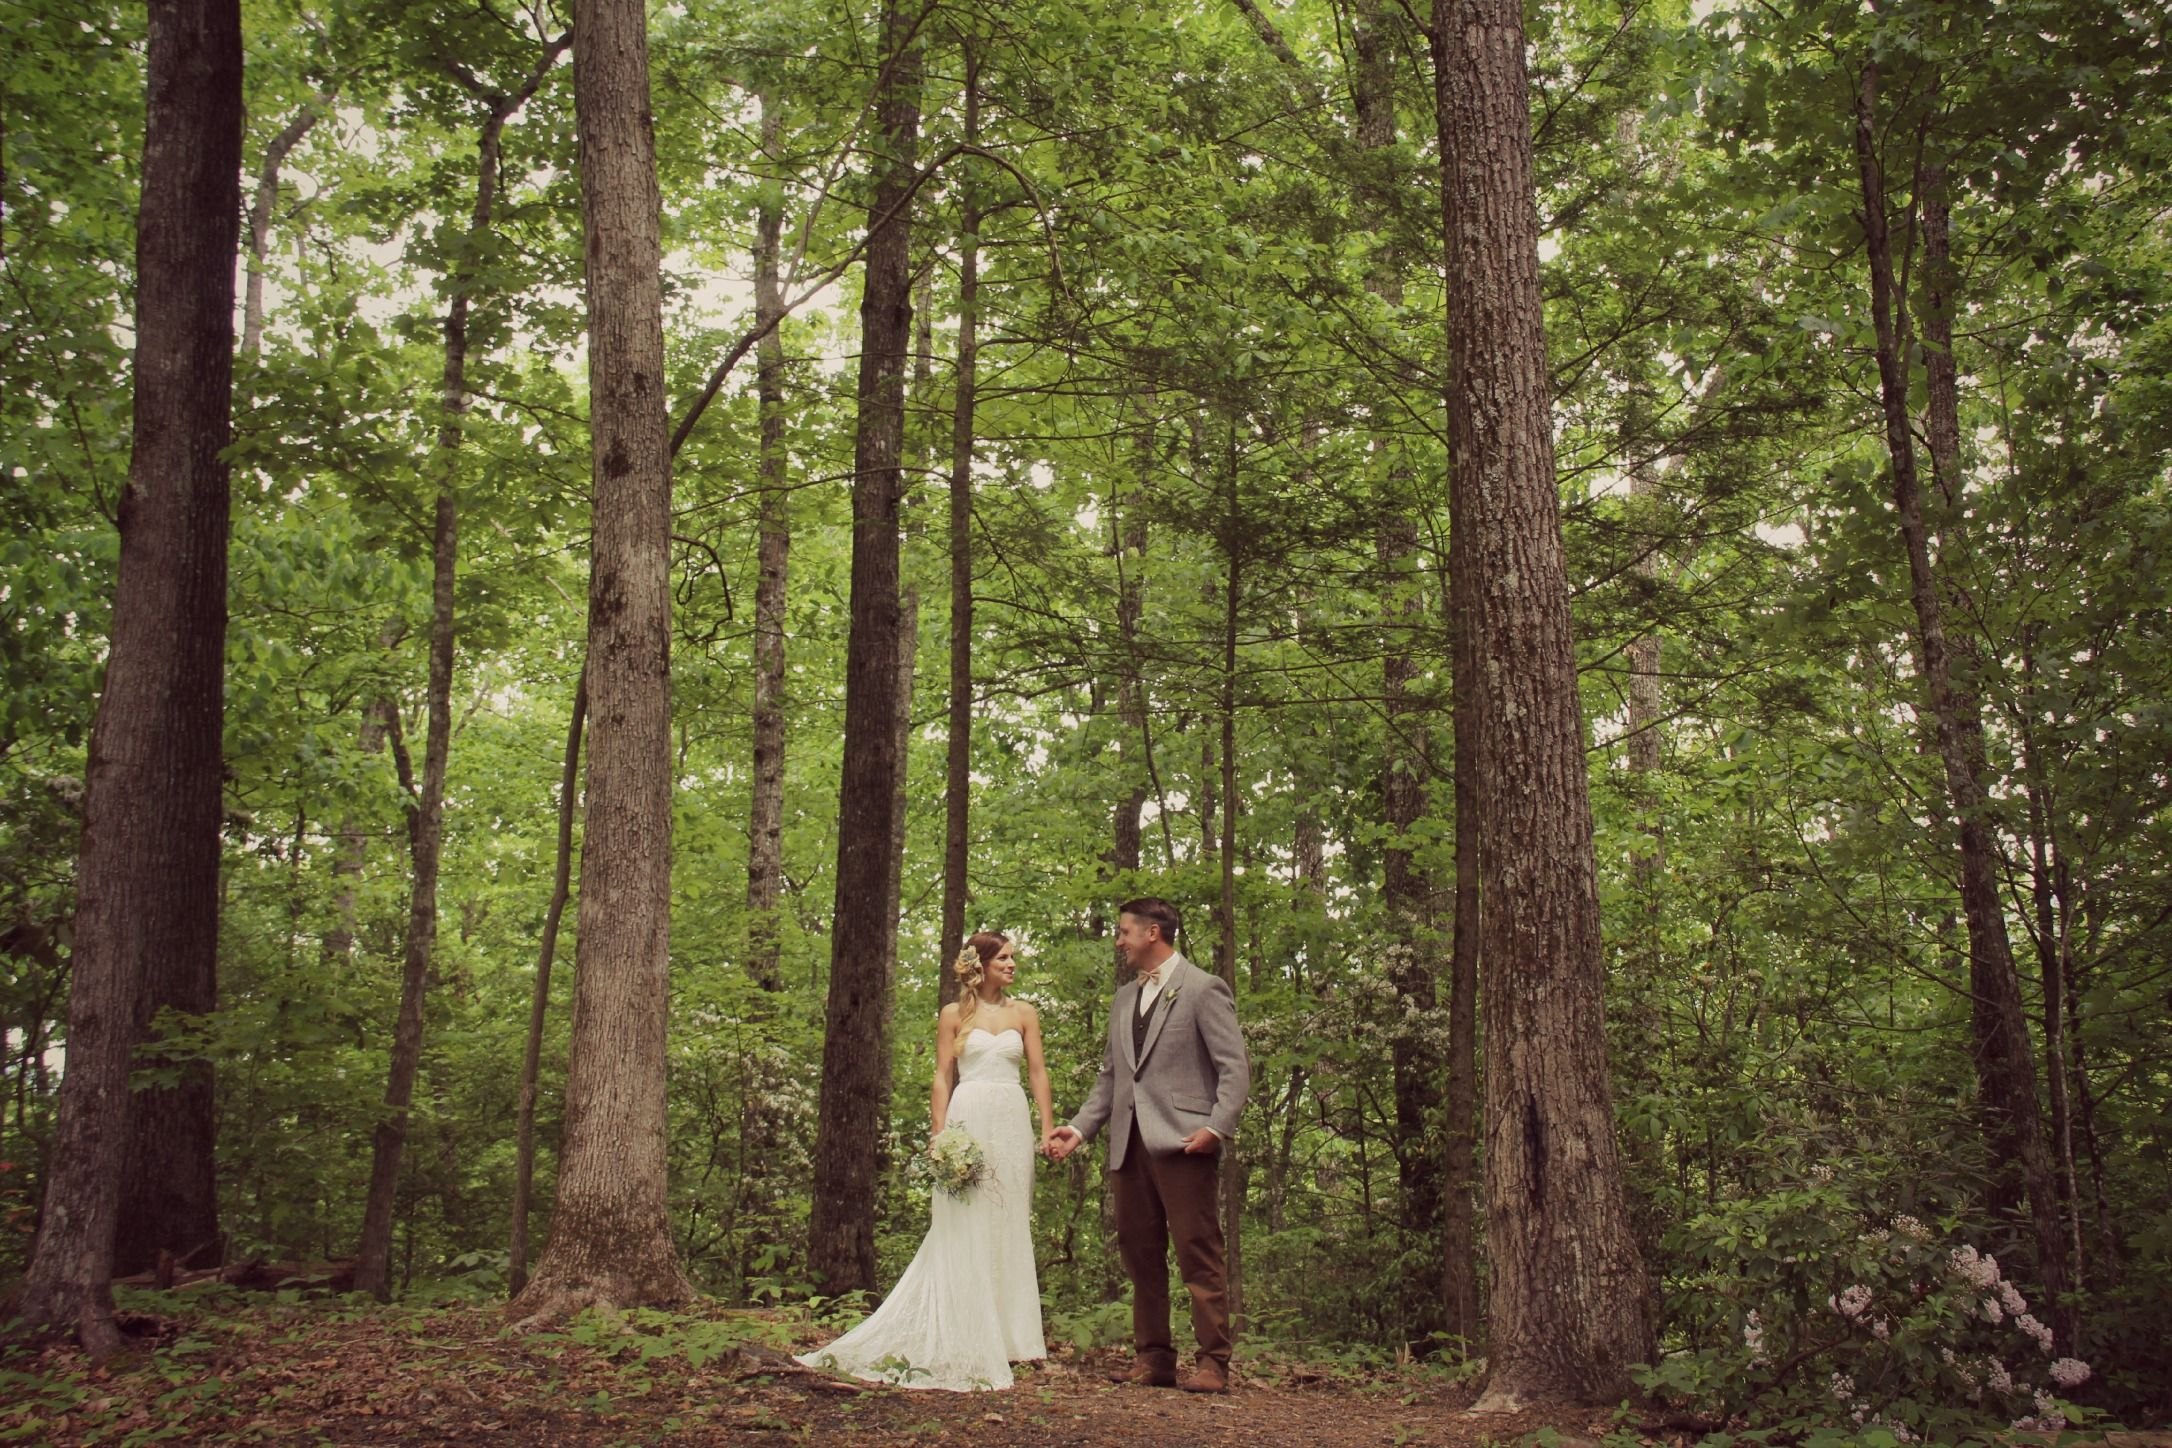 A Woodland Wedding Chapelatthepark Gatlinburg Weddings Photography Gatlinburg Weddings Woodland Wedding Venues Knoxville Wedding Venue